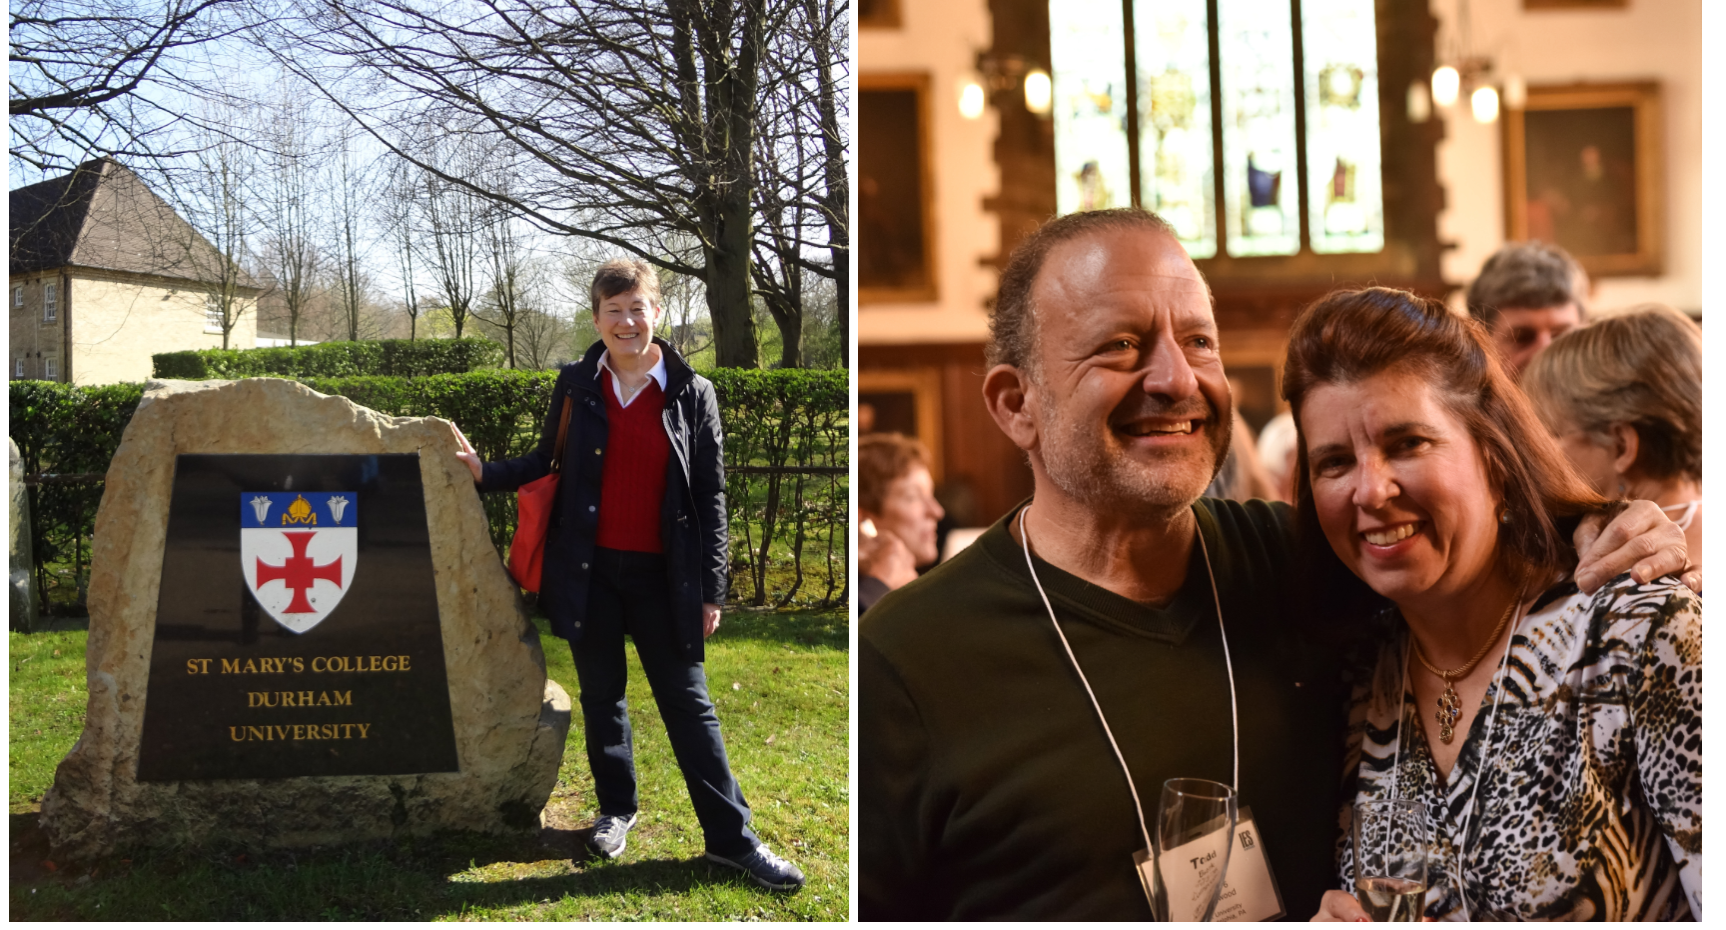 Alumni reuniting in Durham Castle and outside St Mary's College at 2017 Durham Alumni Weekend